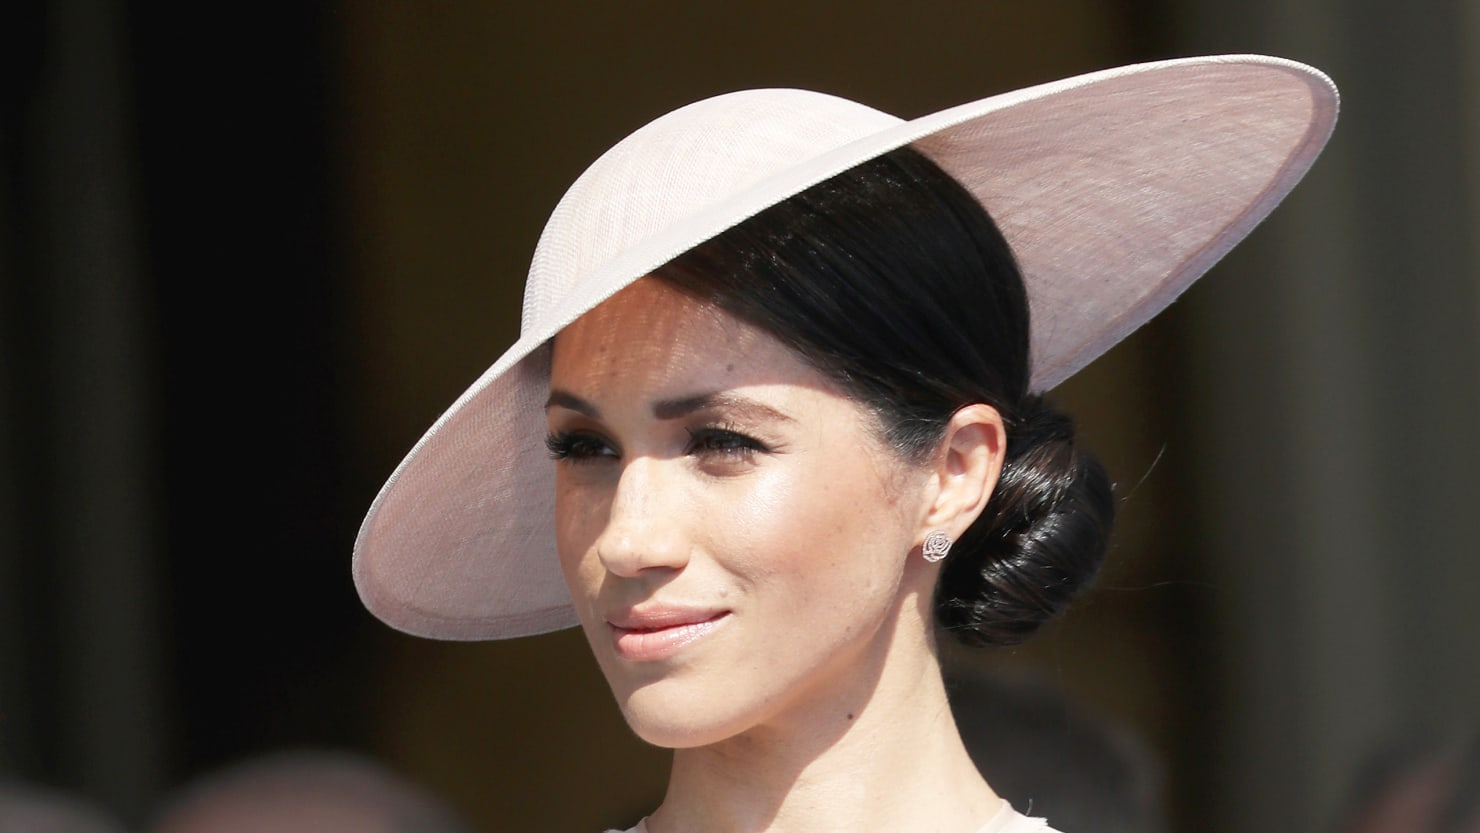 New Princess Meghan Markle Makes Her First Public Appearance